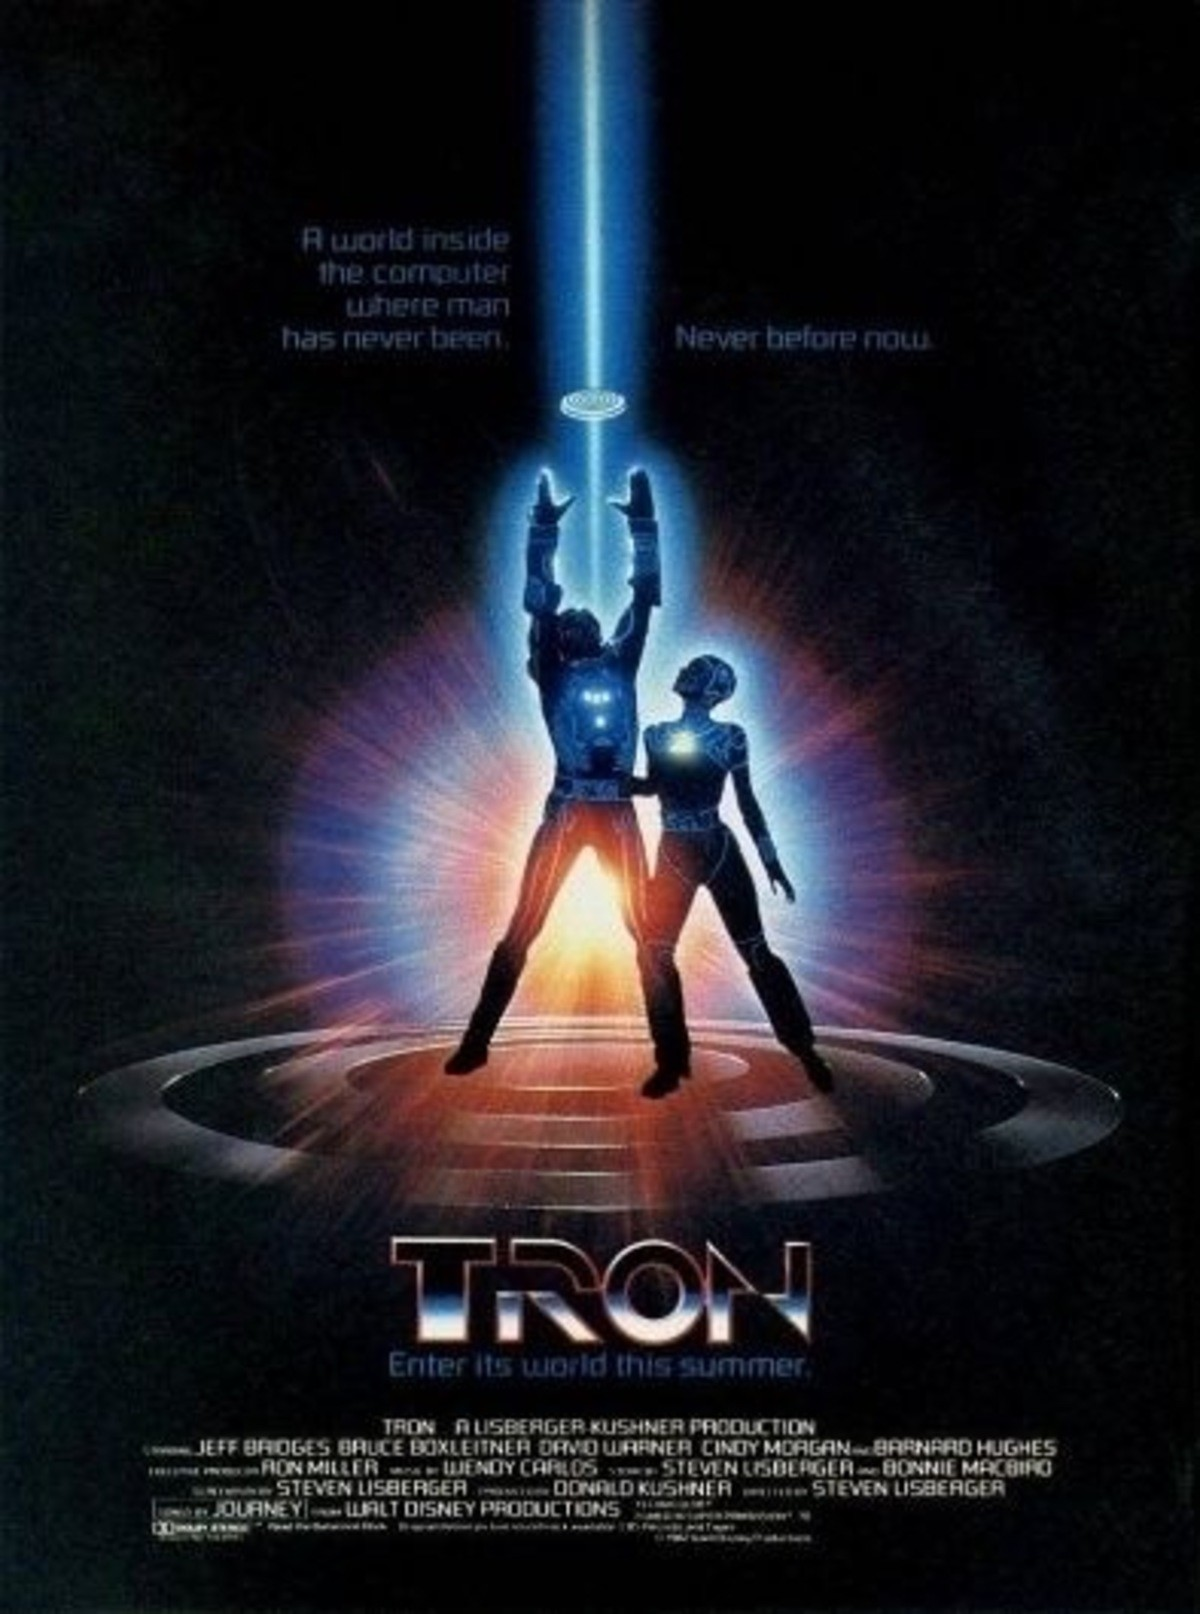 Must watch classics. Tron Robocop Big Trouble in Little China The Lost Boys American Werewolf in London Ghostbusters The Thing Friday the 13th Halloween Nightma